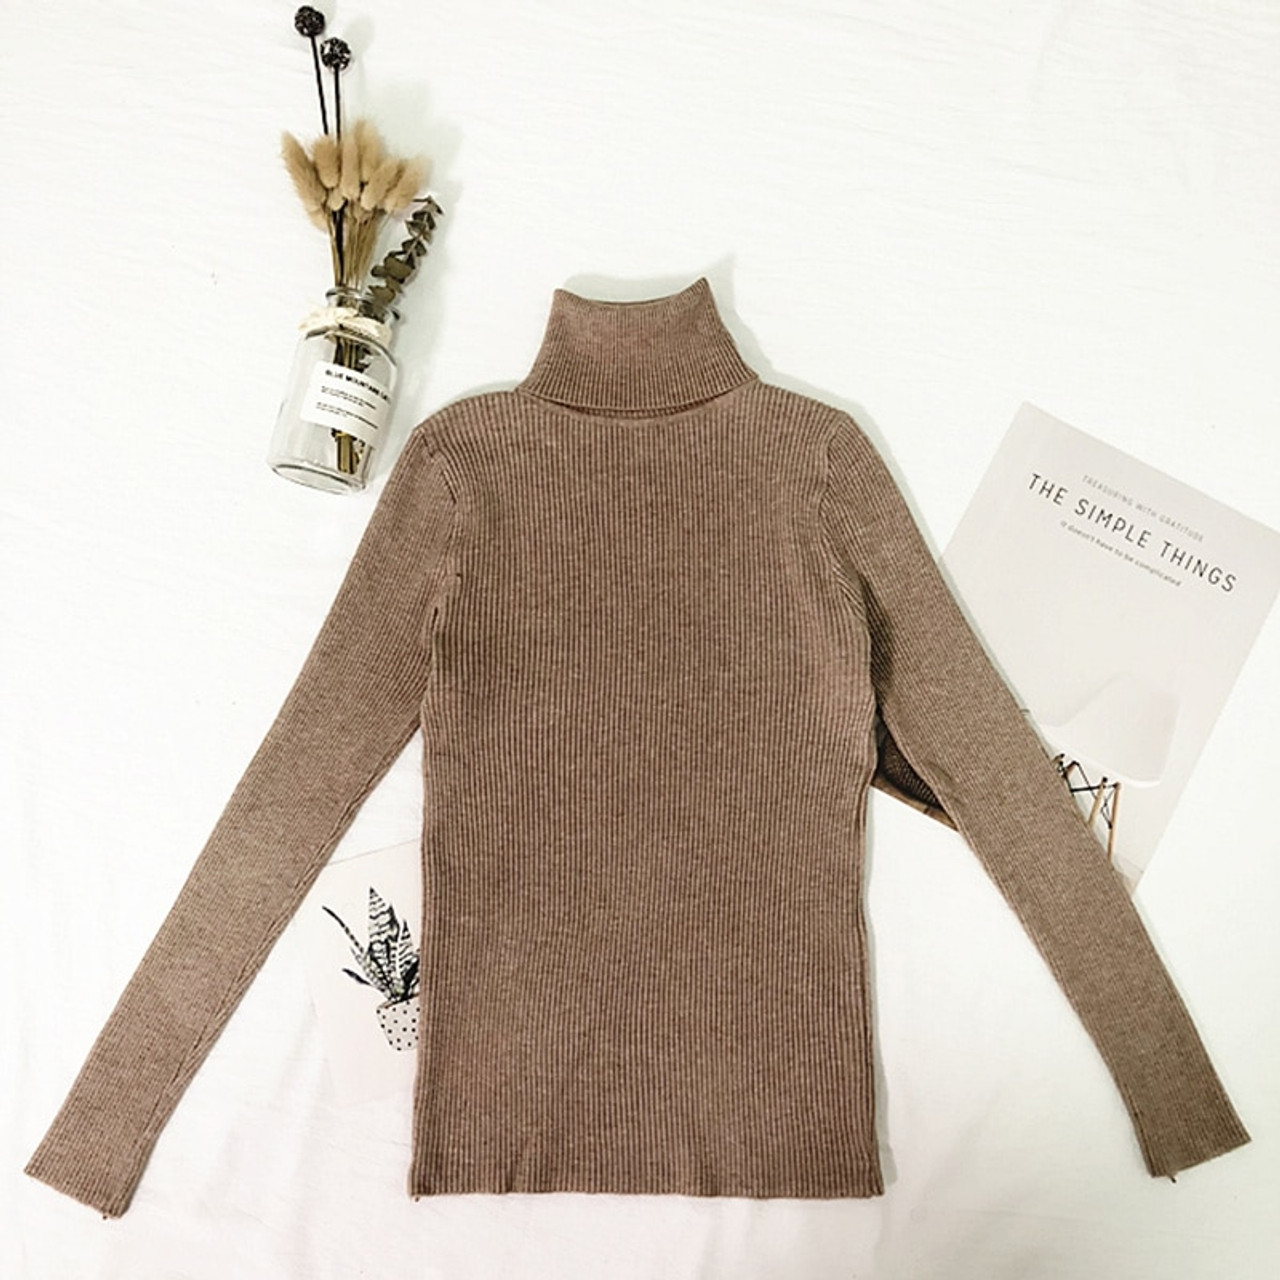 764358021a5 ... Womens Sweaters 2018 Winter Tops Turtleneck Sweater Women Thin Pullover  Jumper Knitted Sweater Pull Femme Hiver ...